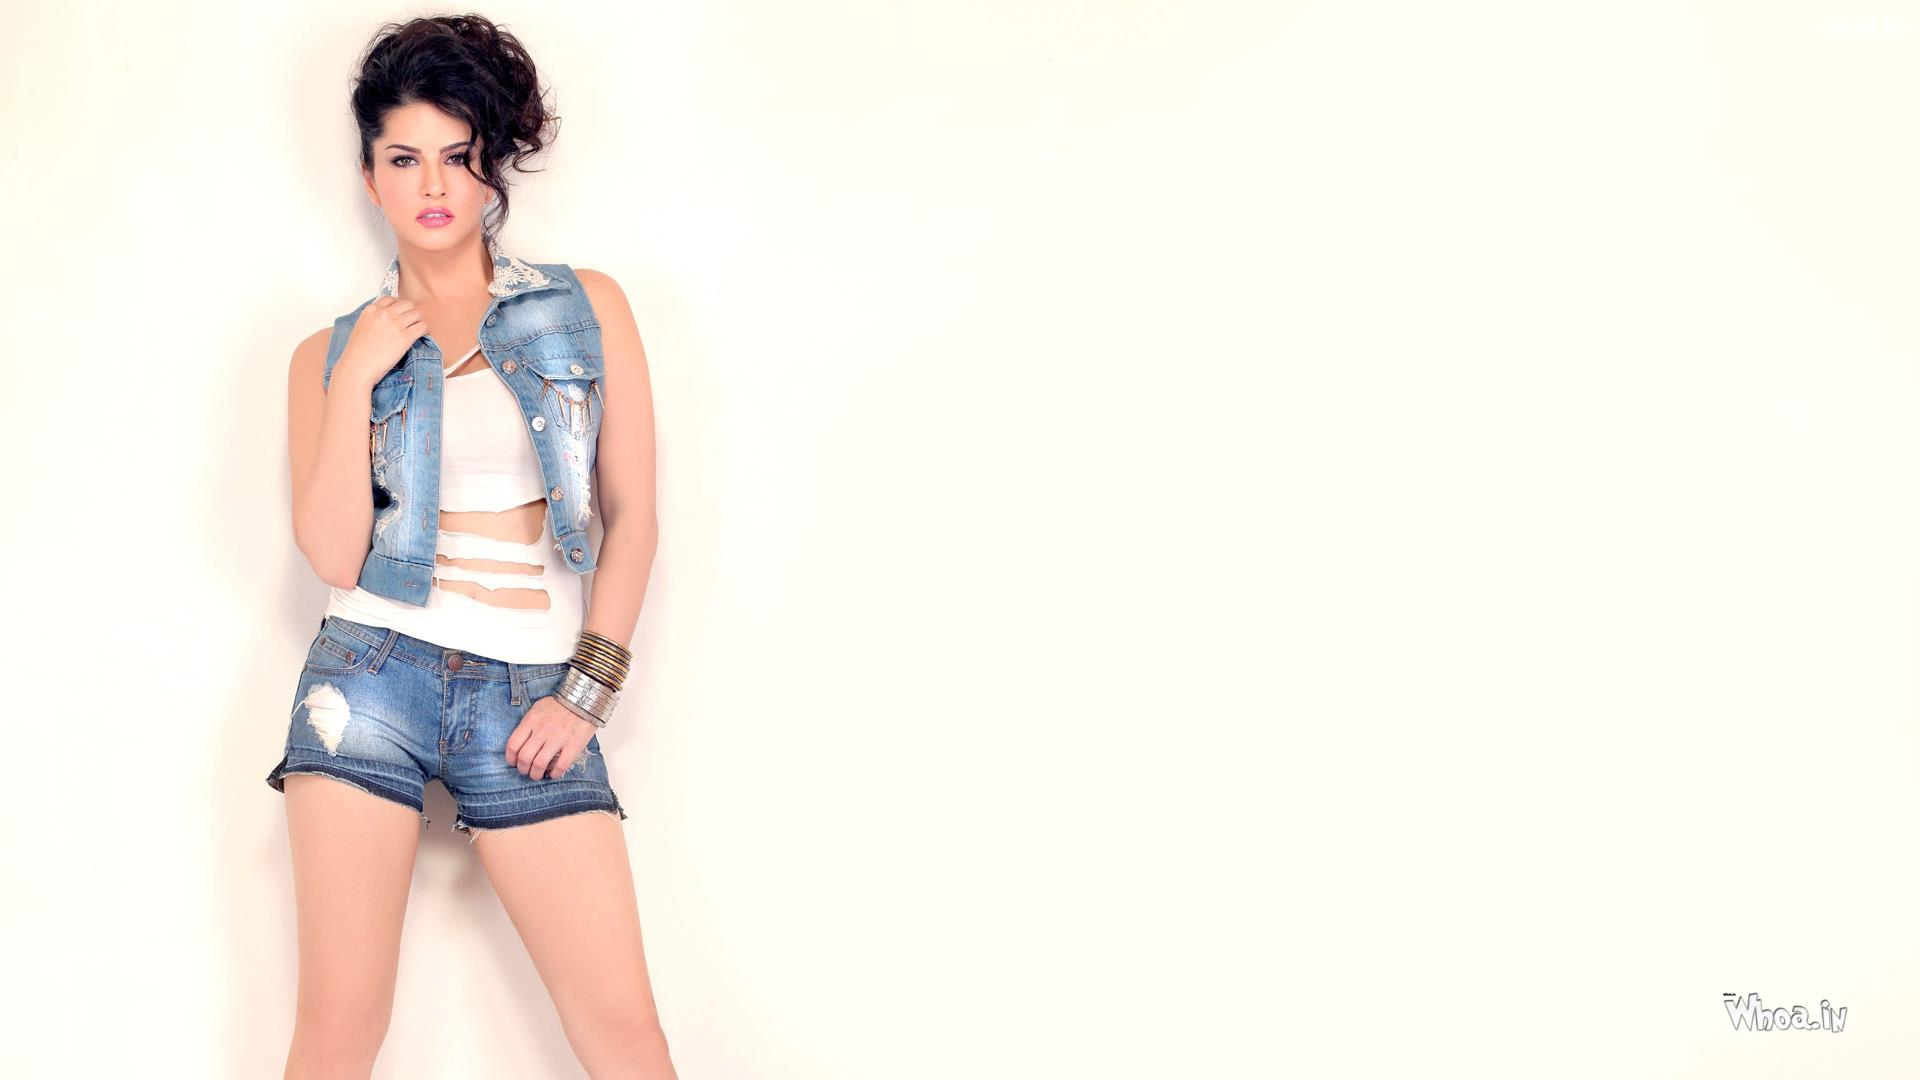 sunny leone with white background hd wallpaper